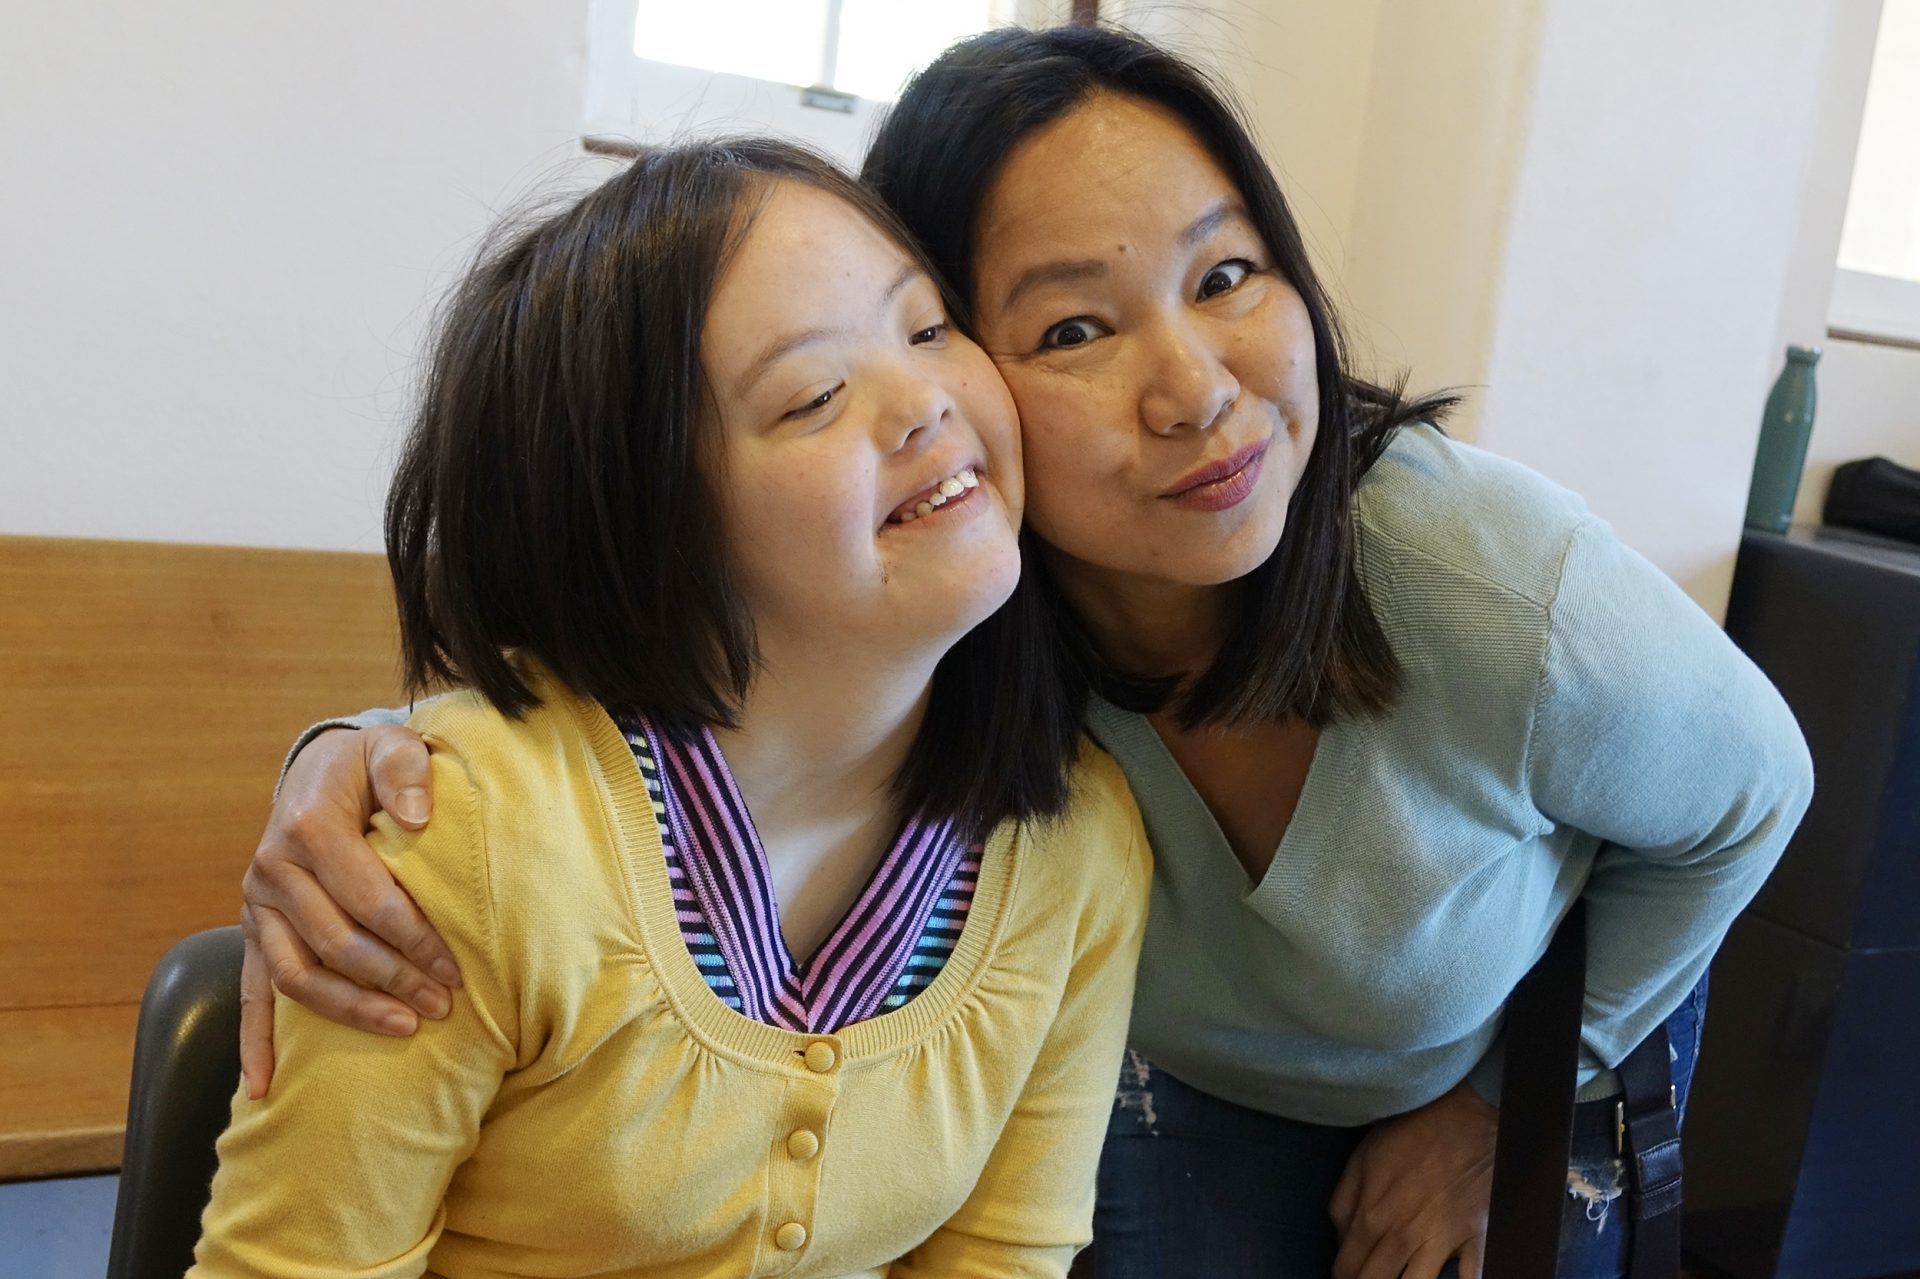 A young girl with dark hair and a yellow jumper is hugged by her mum. They are both smiling.